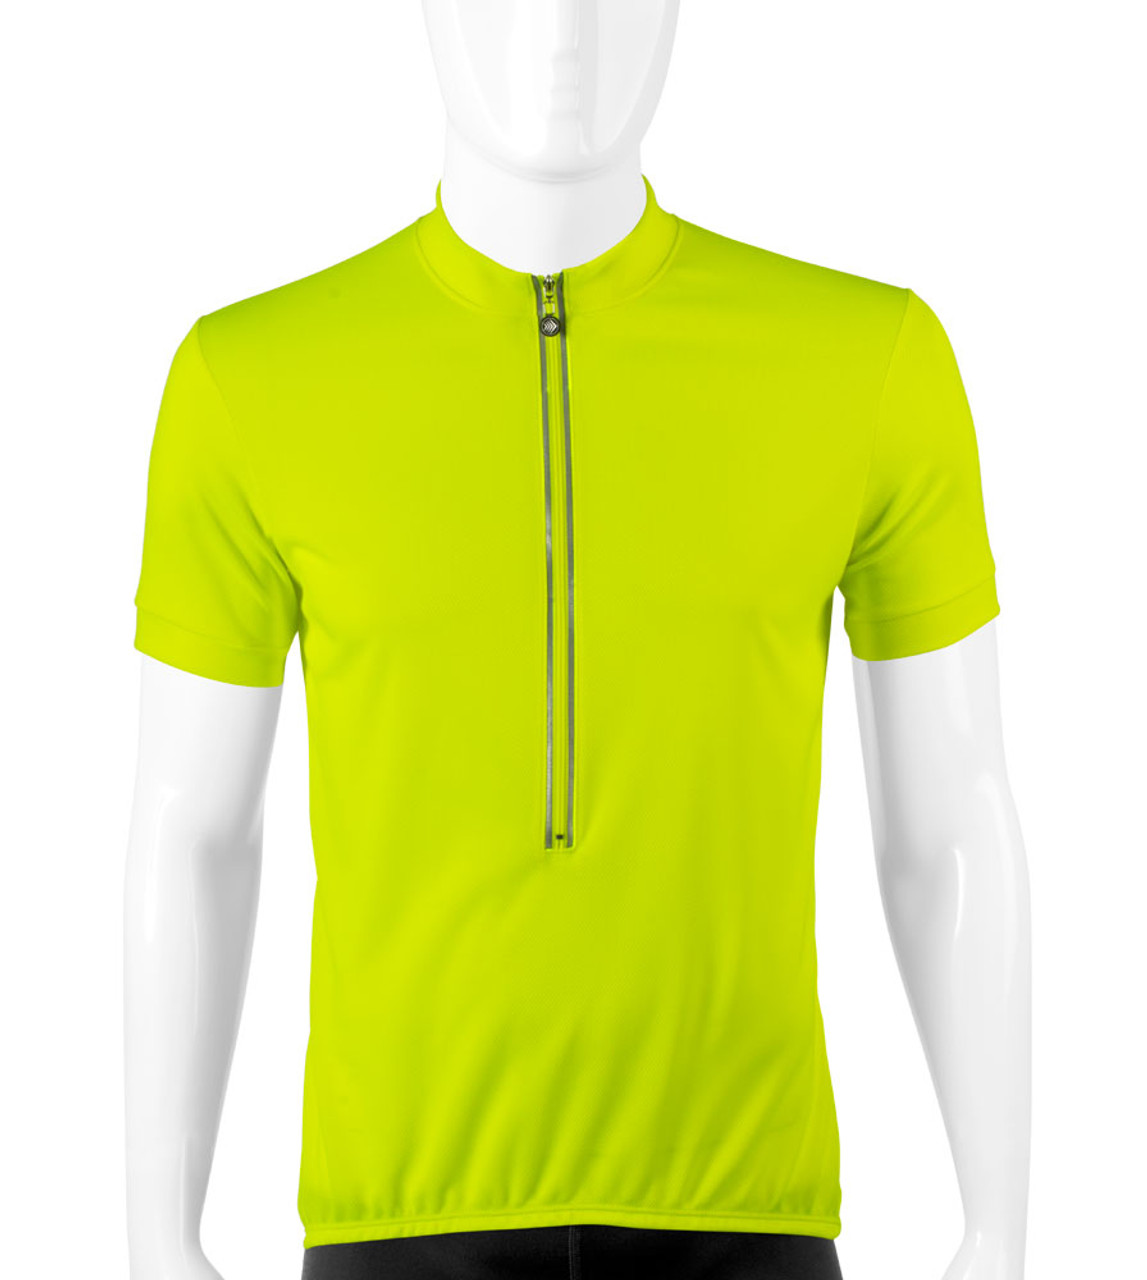 High Visibility Safety Yellow Cycling Jersey a898e50de